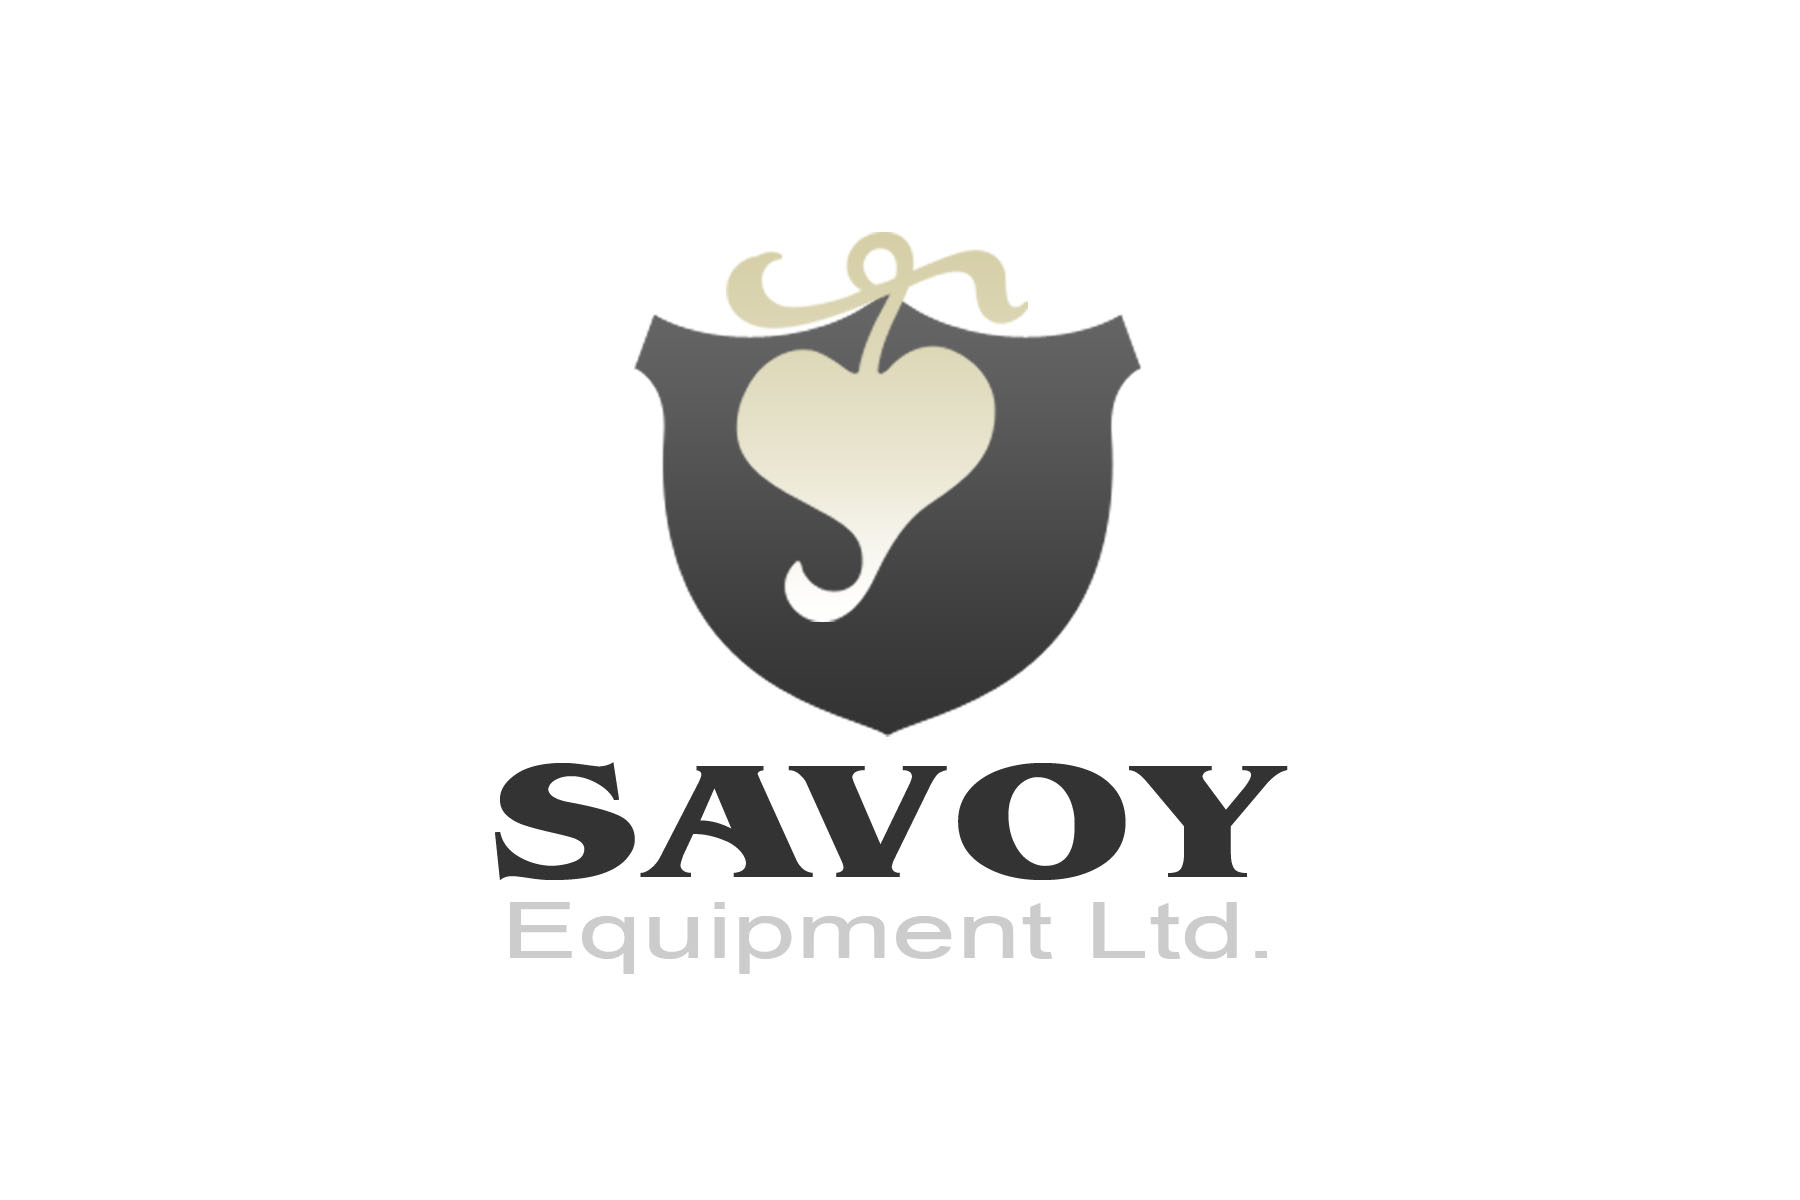 Logo Design by Jastinejay Manliguez - Entry No. 38 in the Logo Design Contest Inspiring Logo Design for Savoy Equipment Ltd..